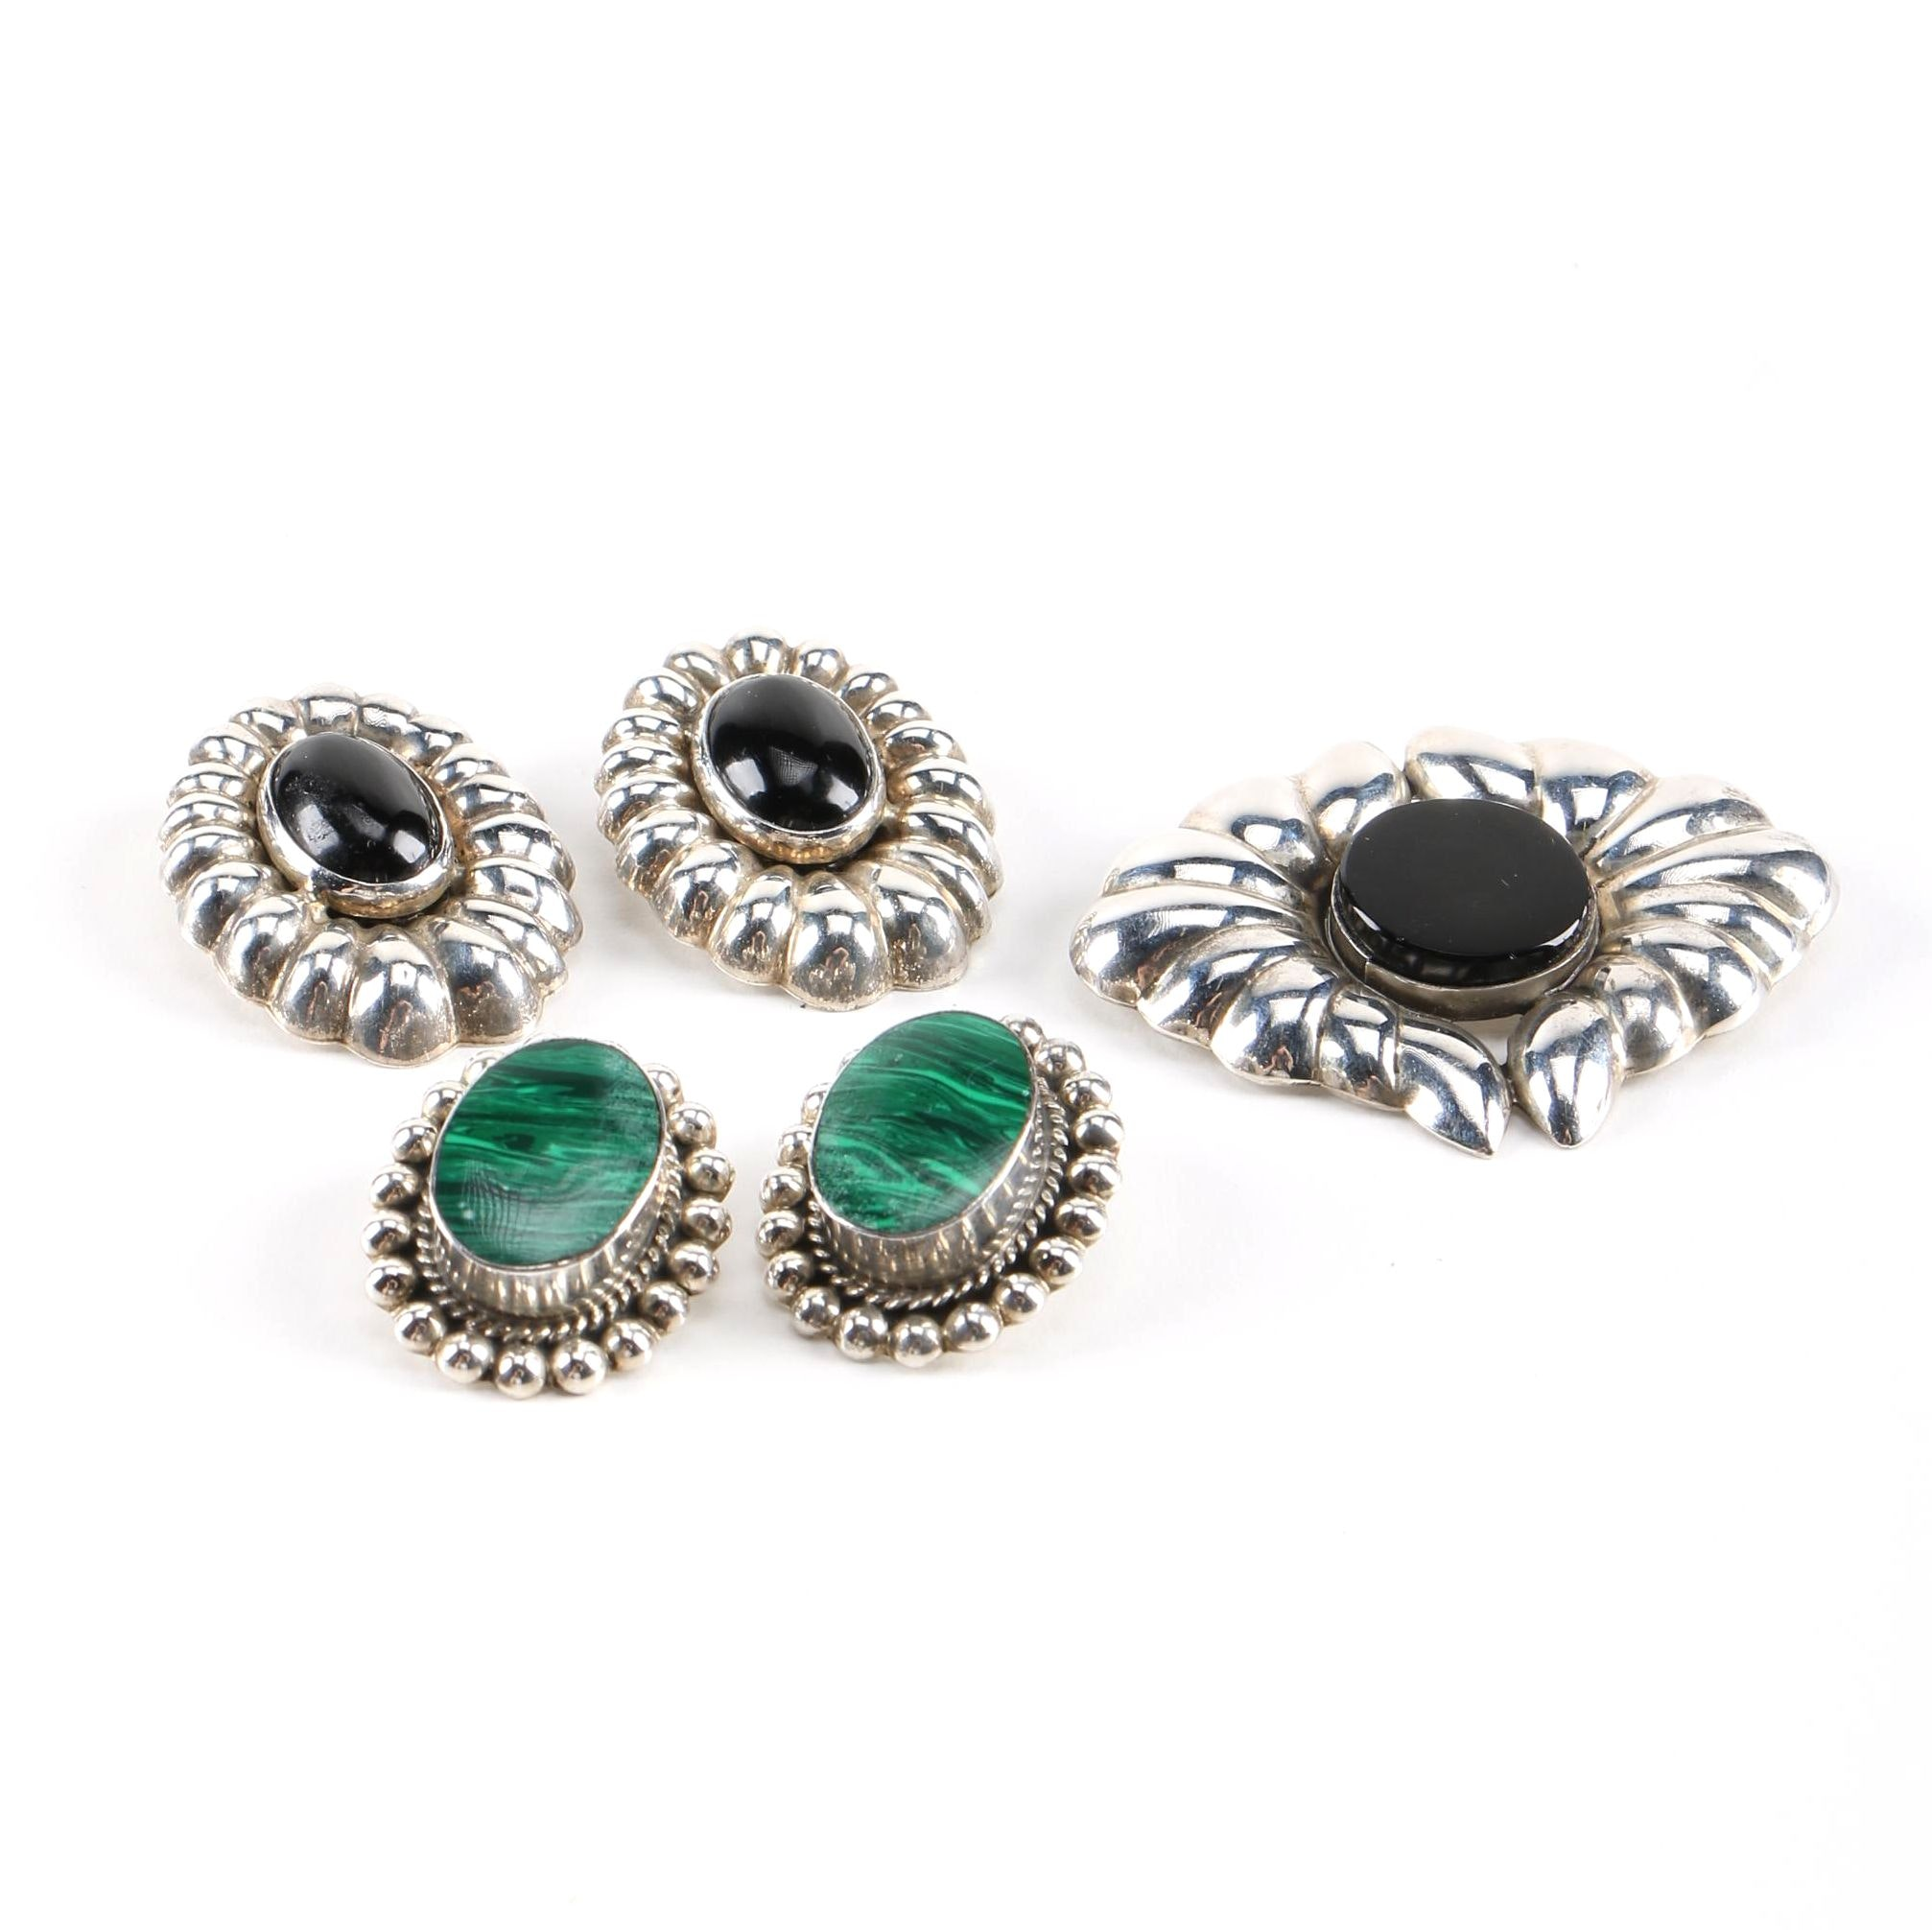 Sterling Silver Taxco Earrings and Brooch